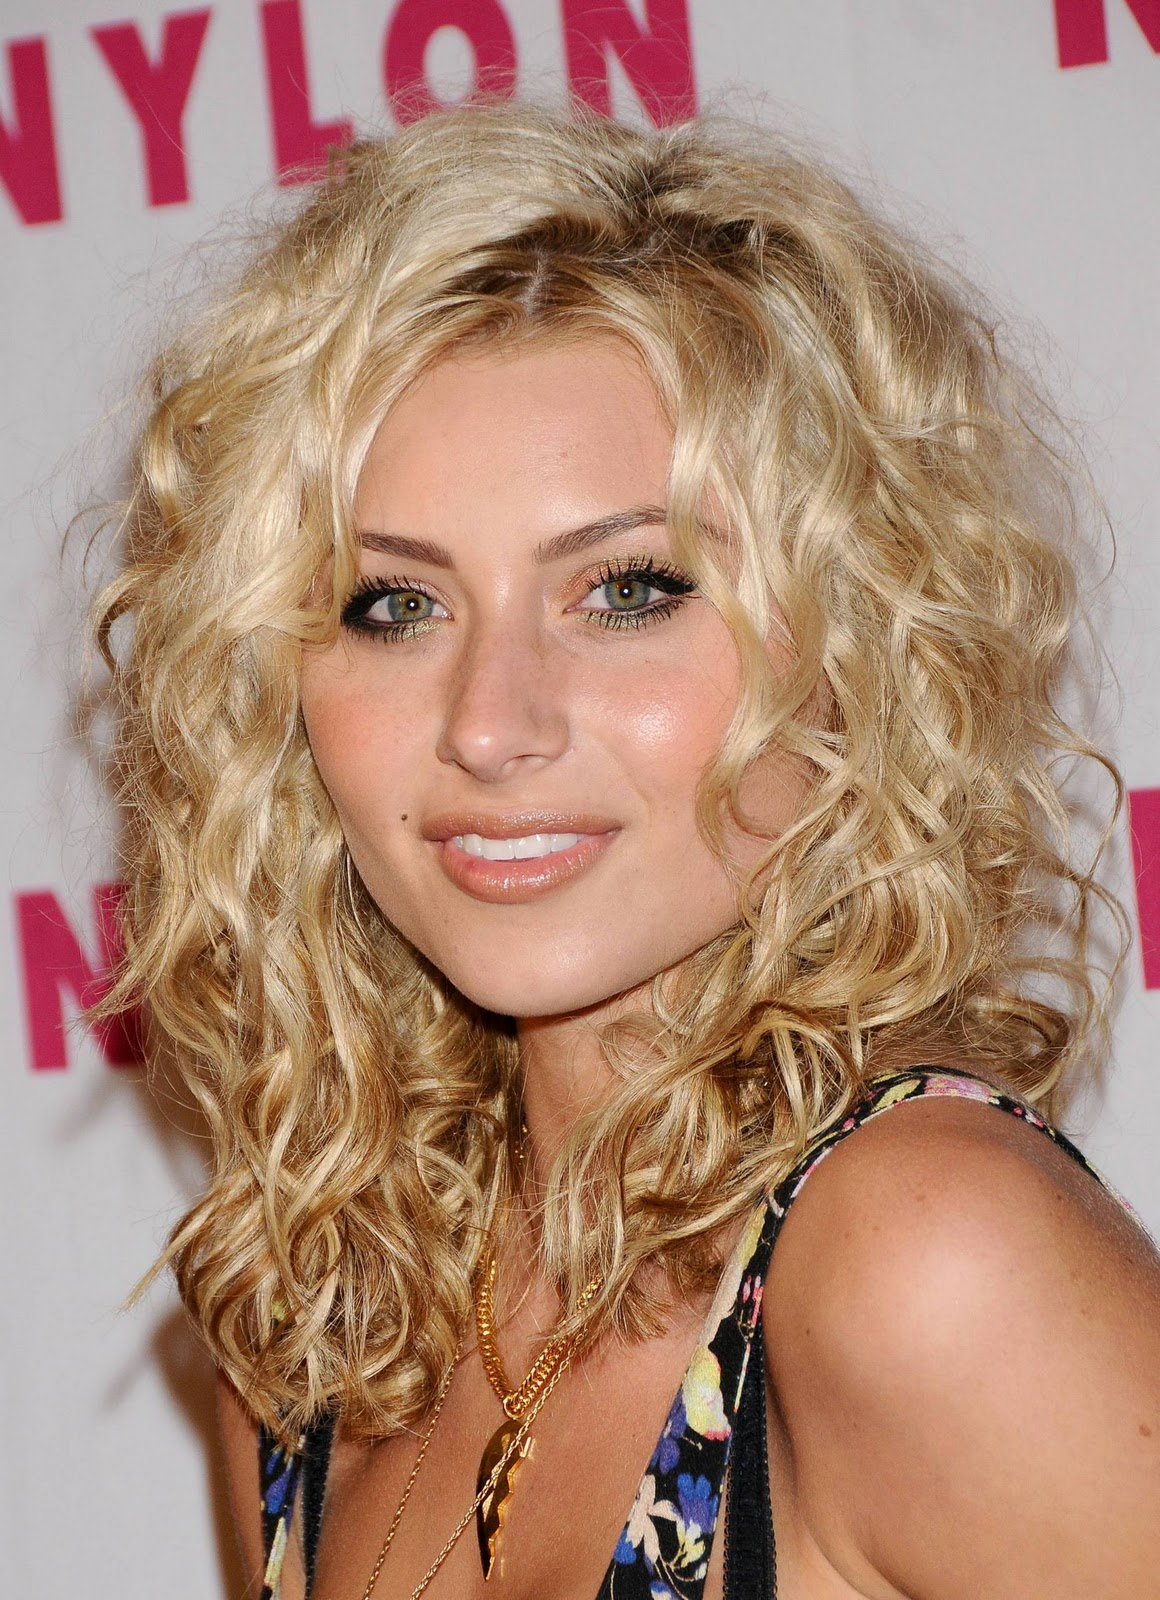 Alyson Aly Michalka Nude Photos 62